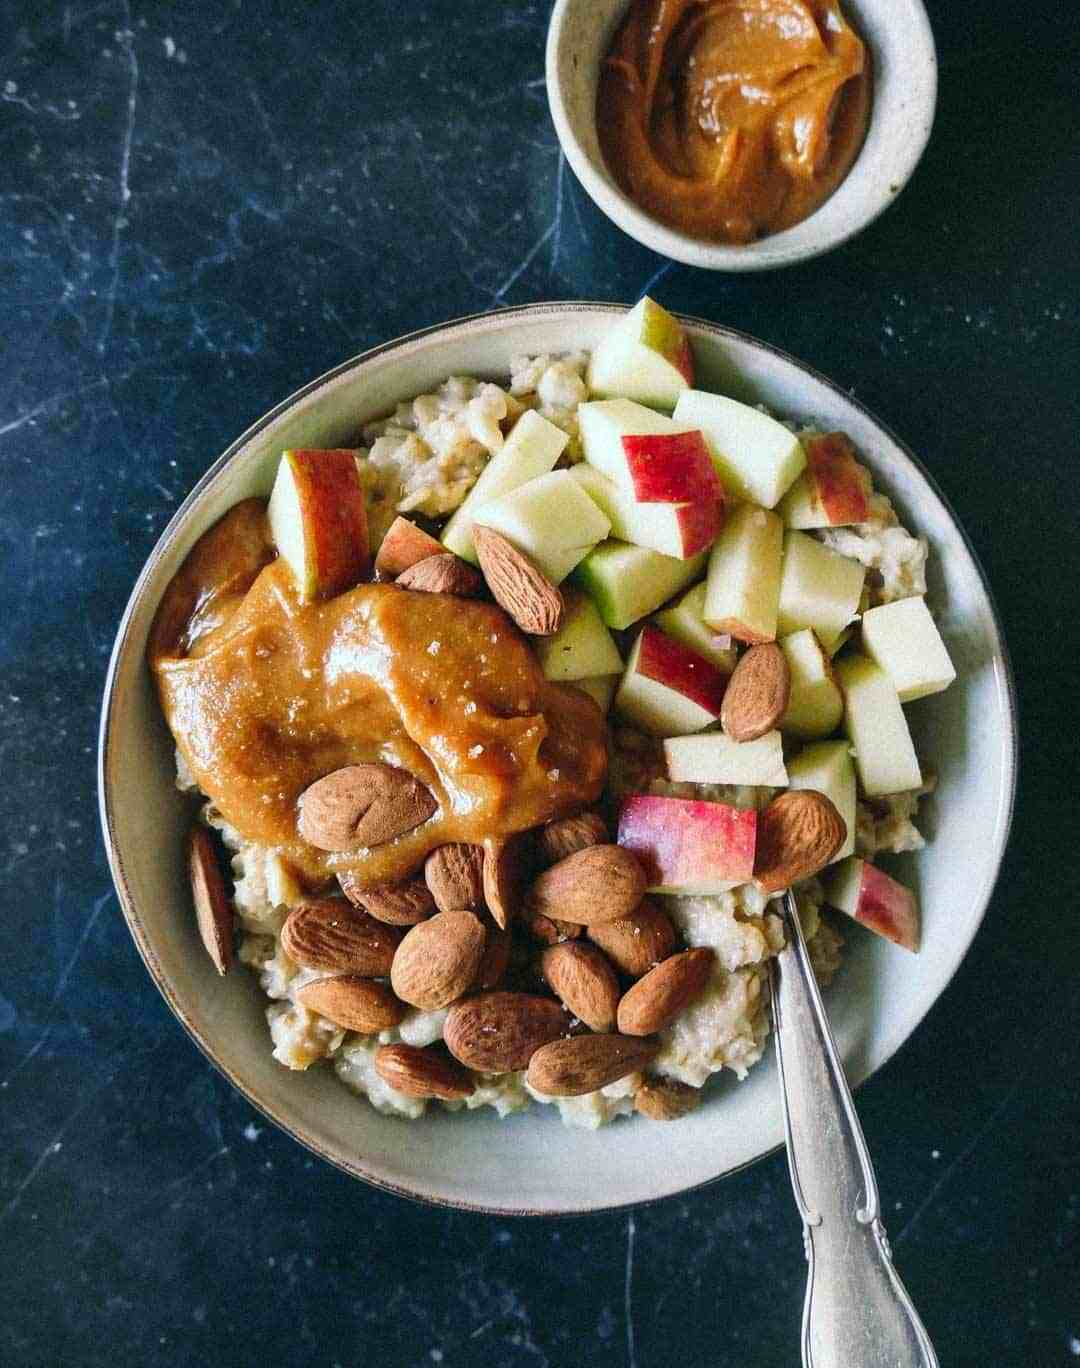 Caramel Oatmeal with Apples